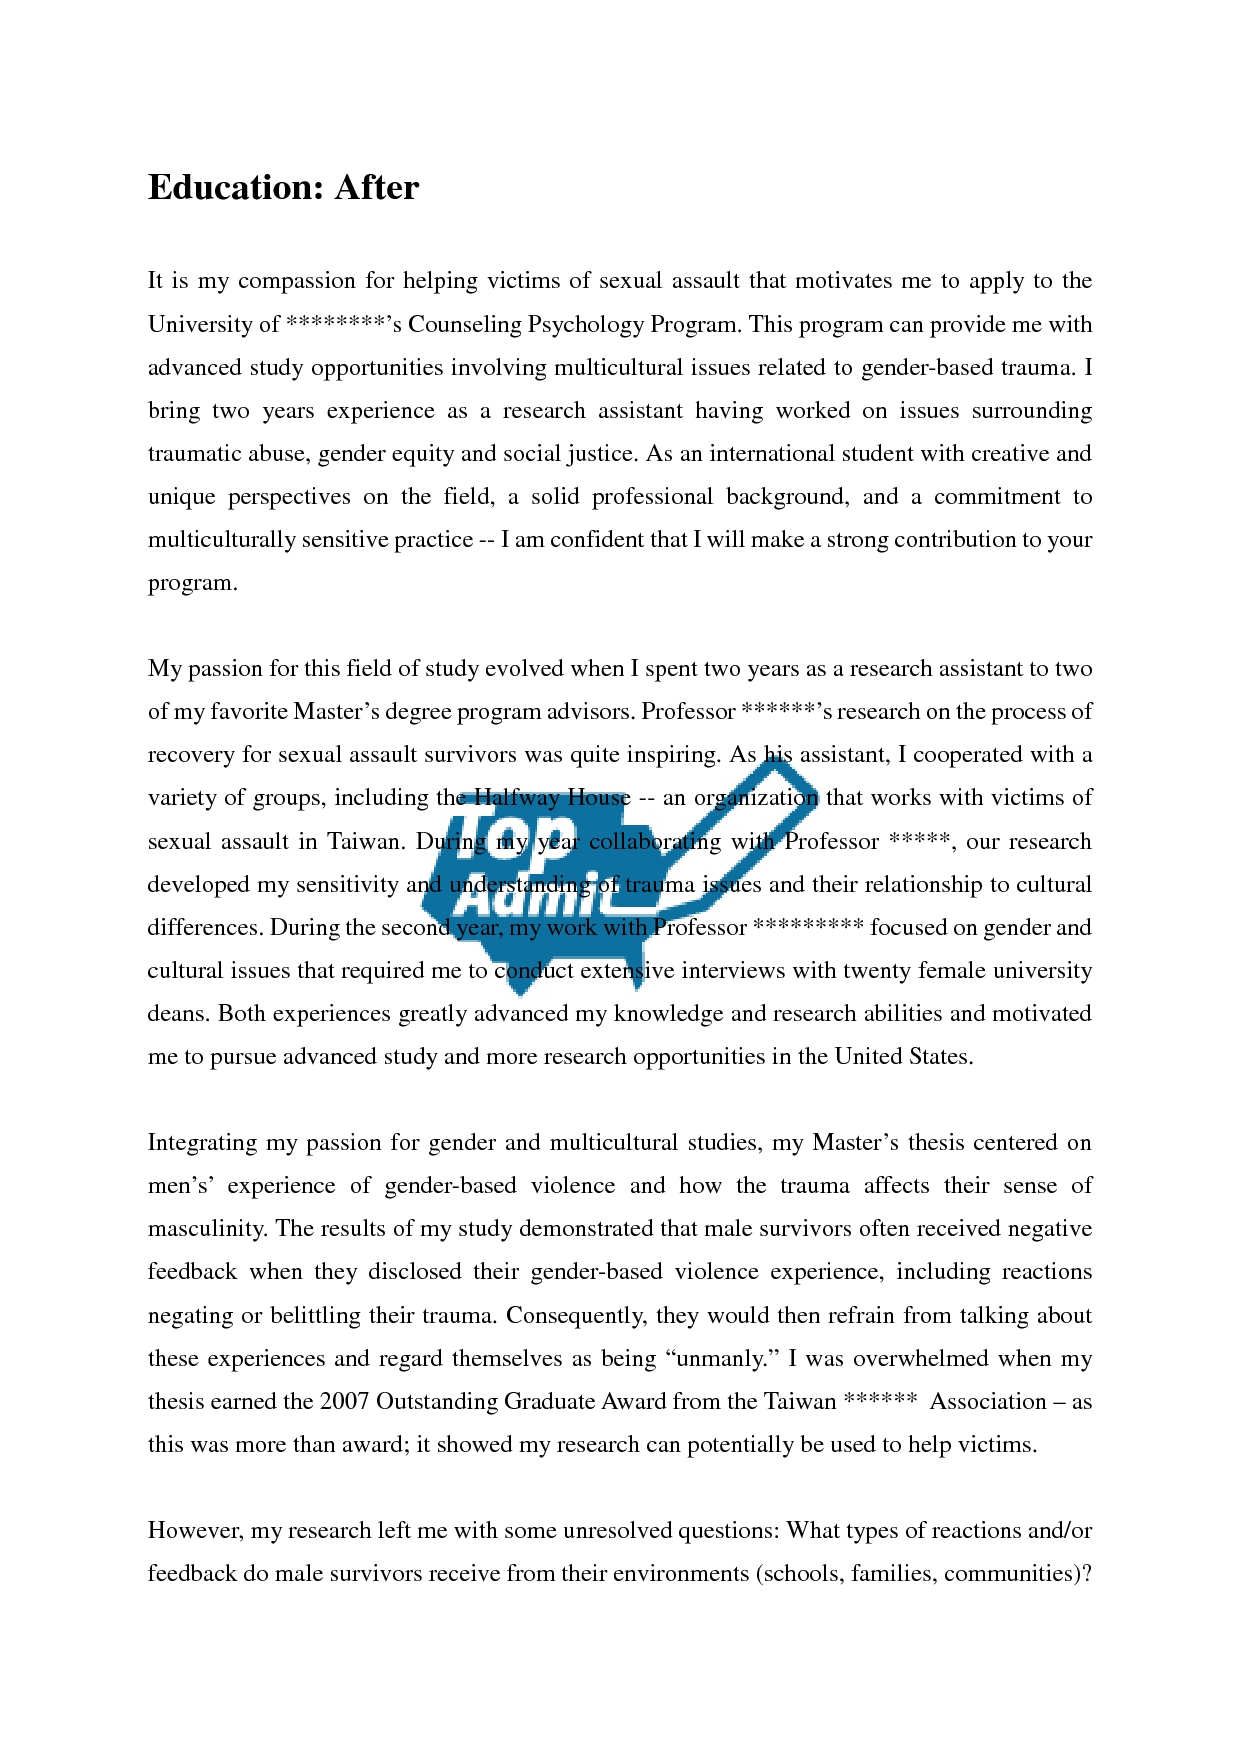 MBA Admission Essay Sample